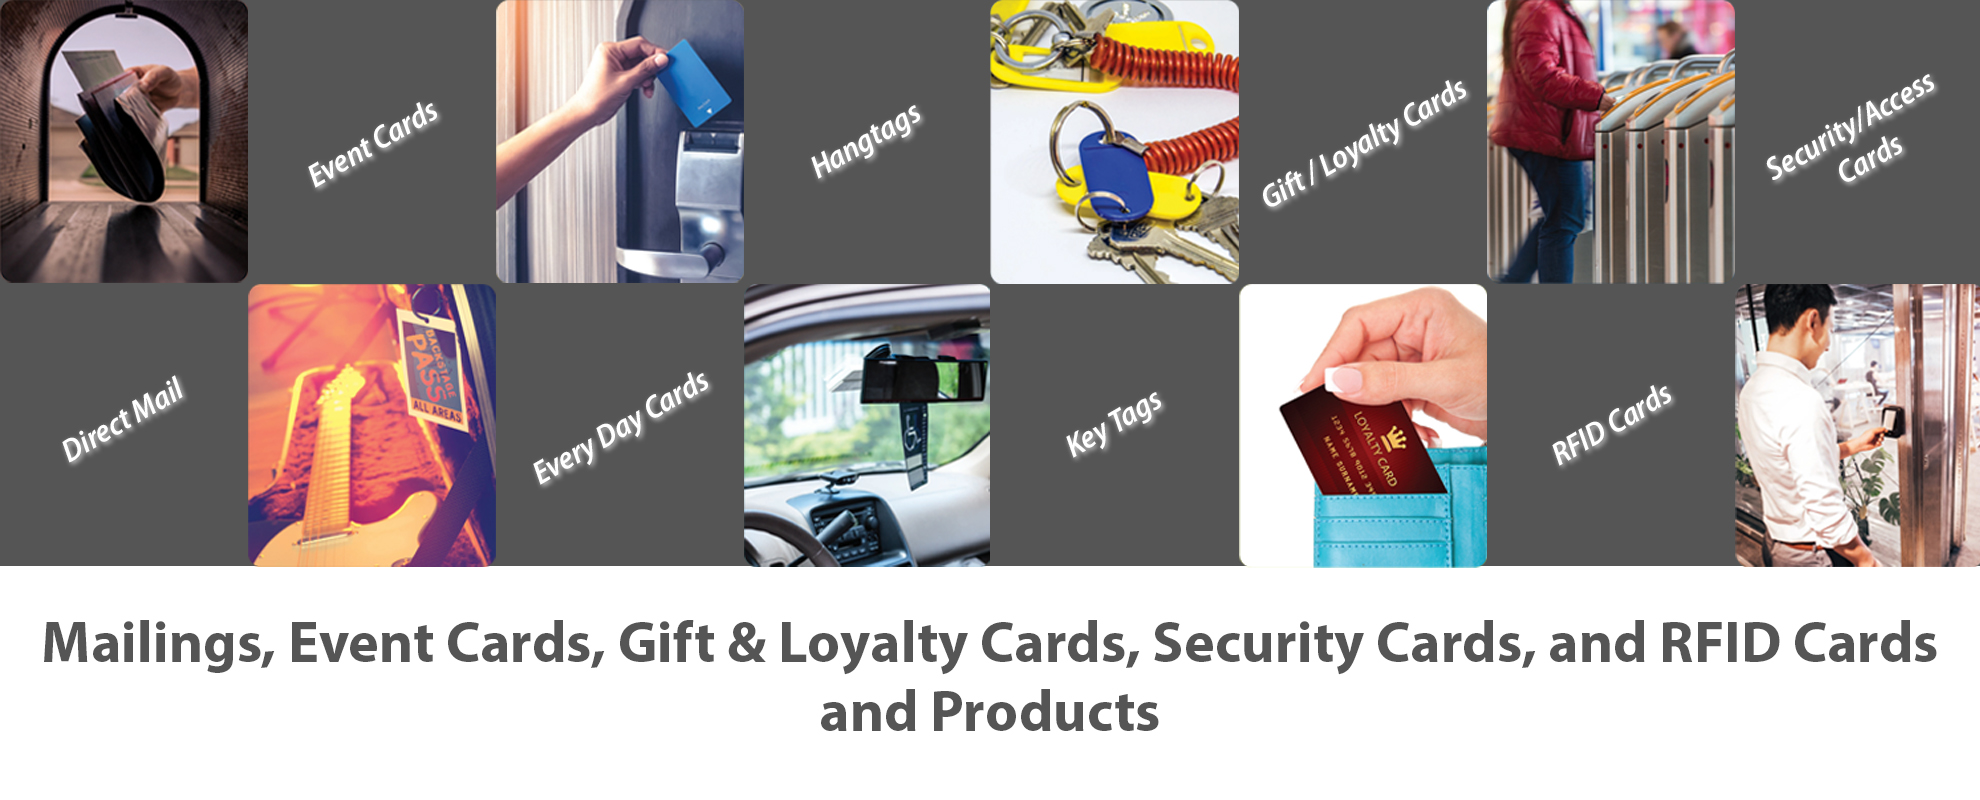 Card Products Graphic